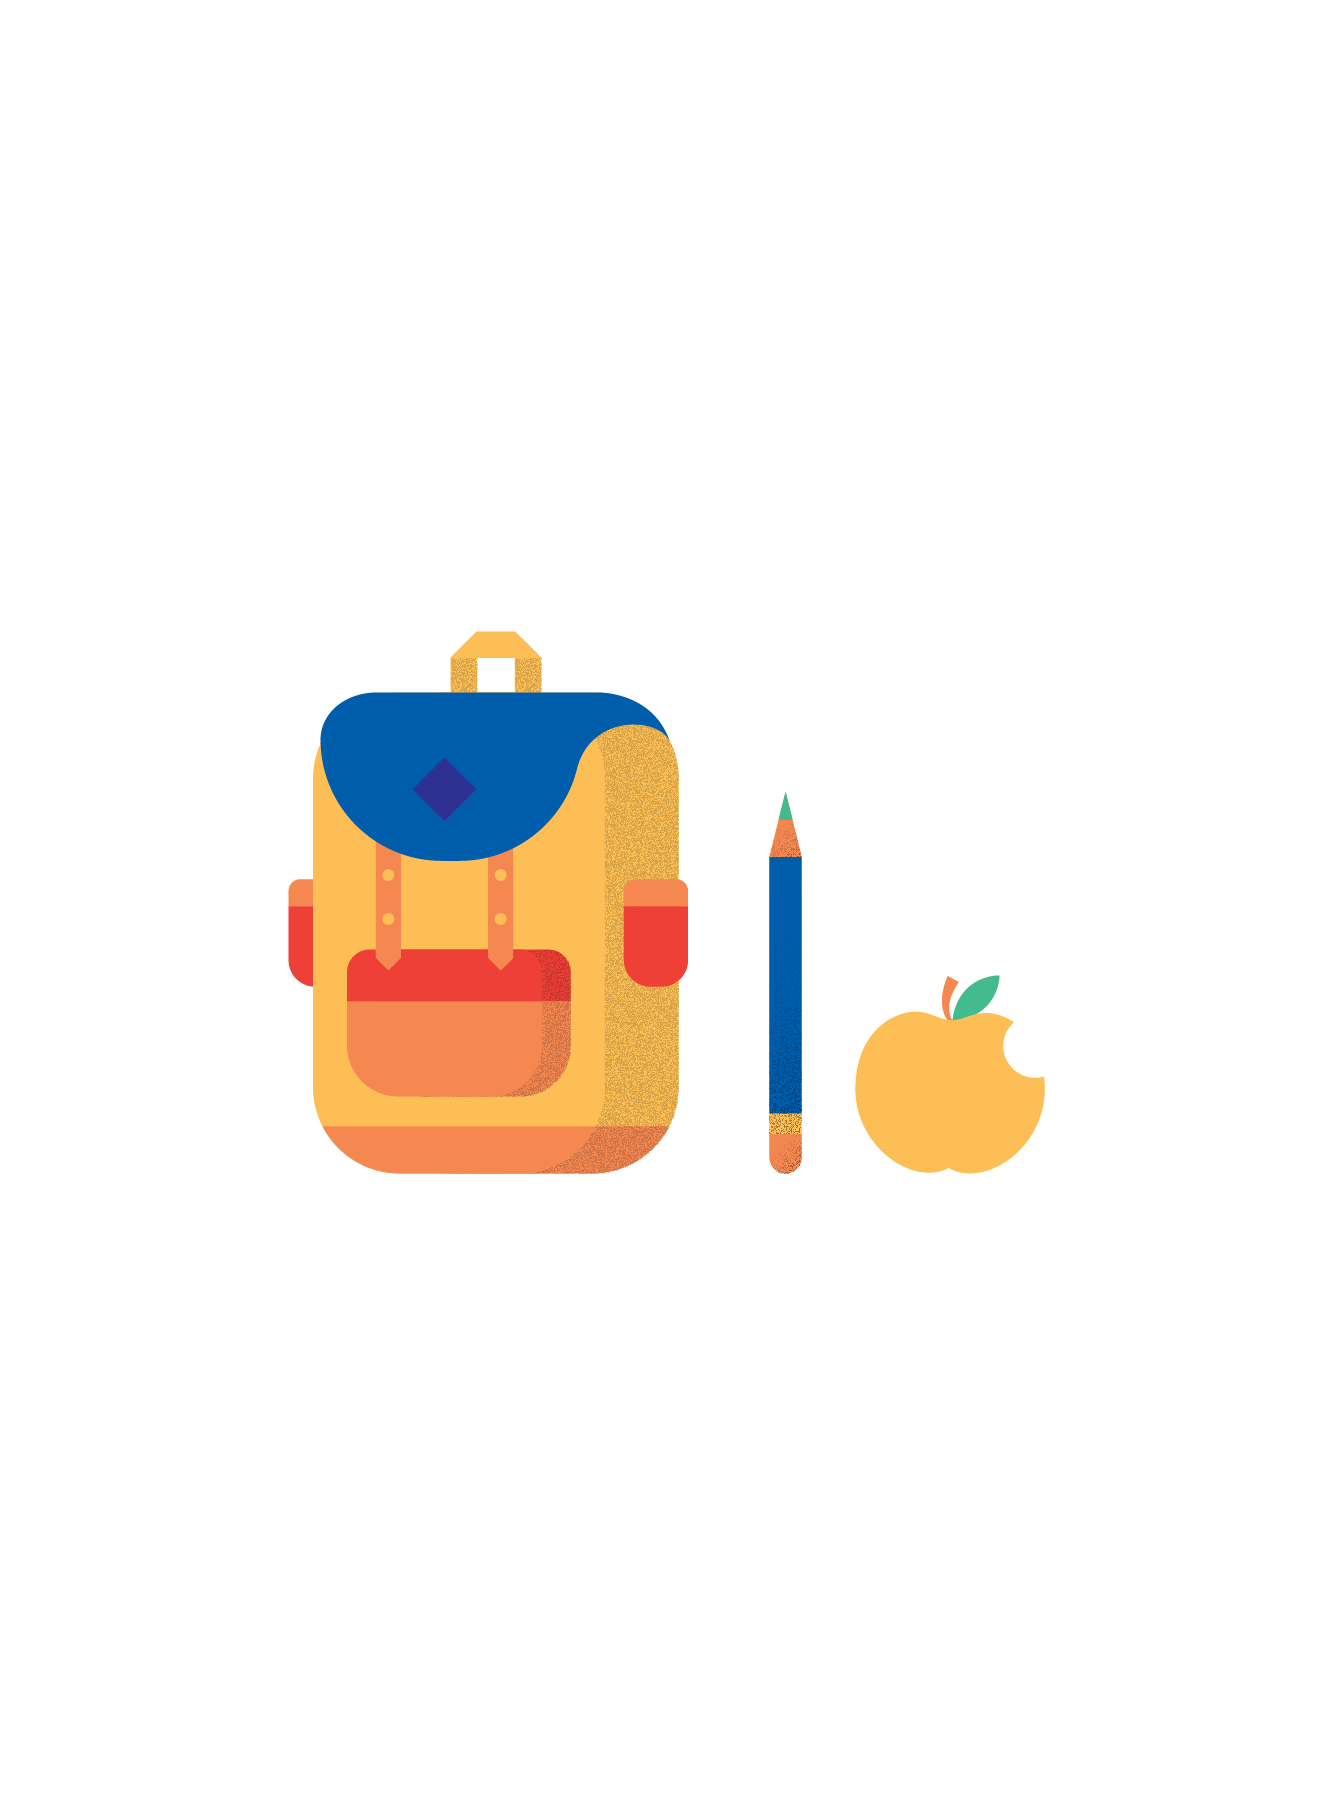 Illustration of a backpack, a pencil, and an apple